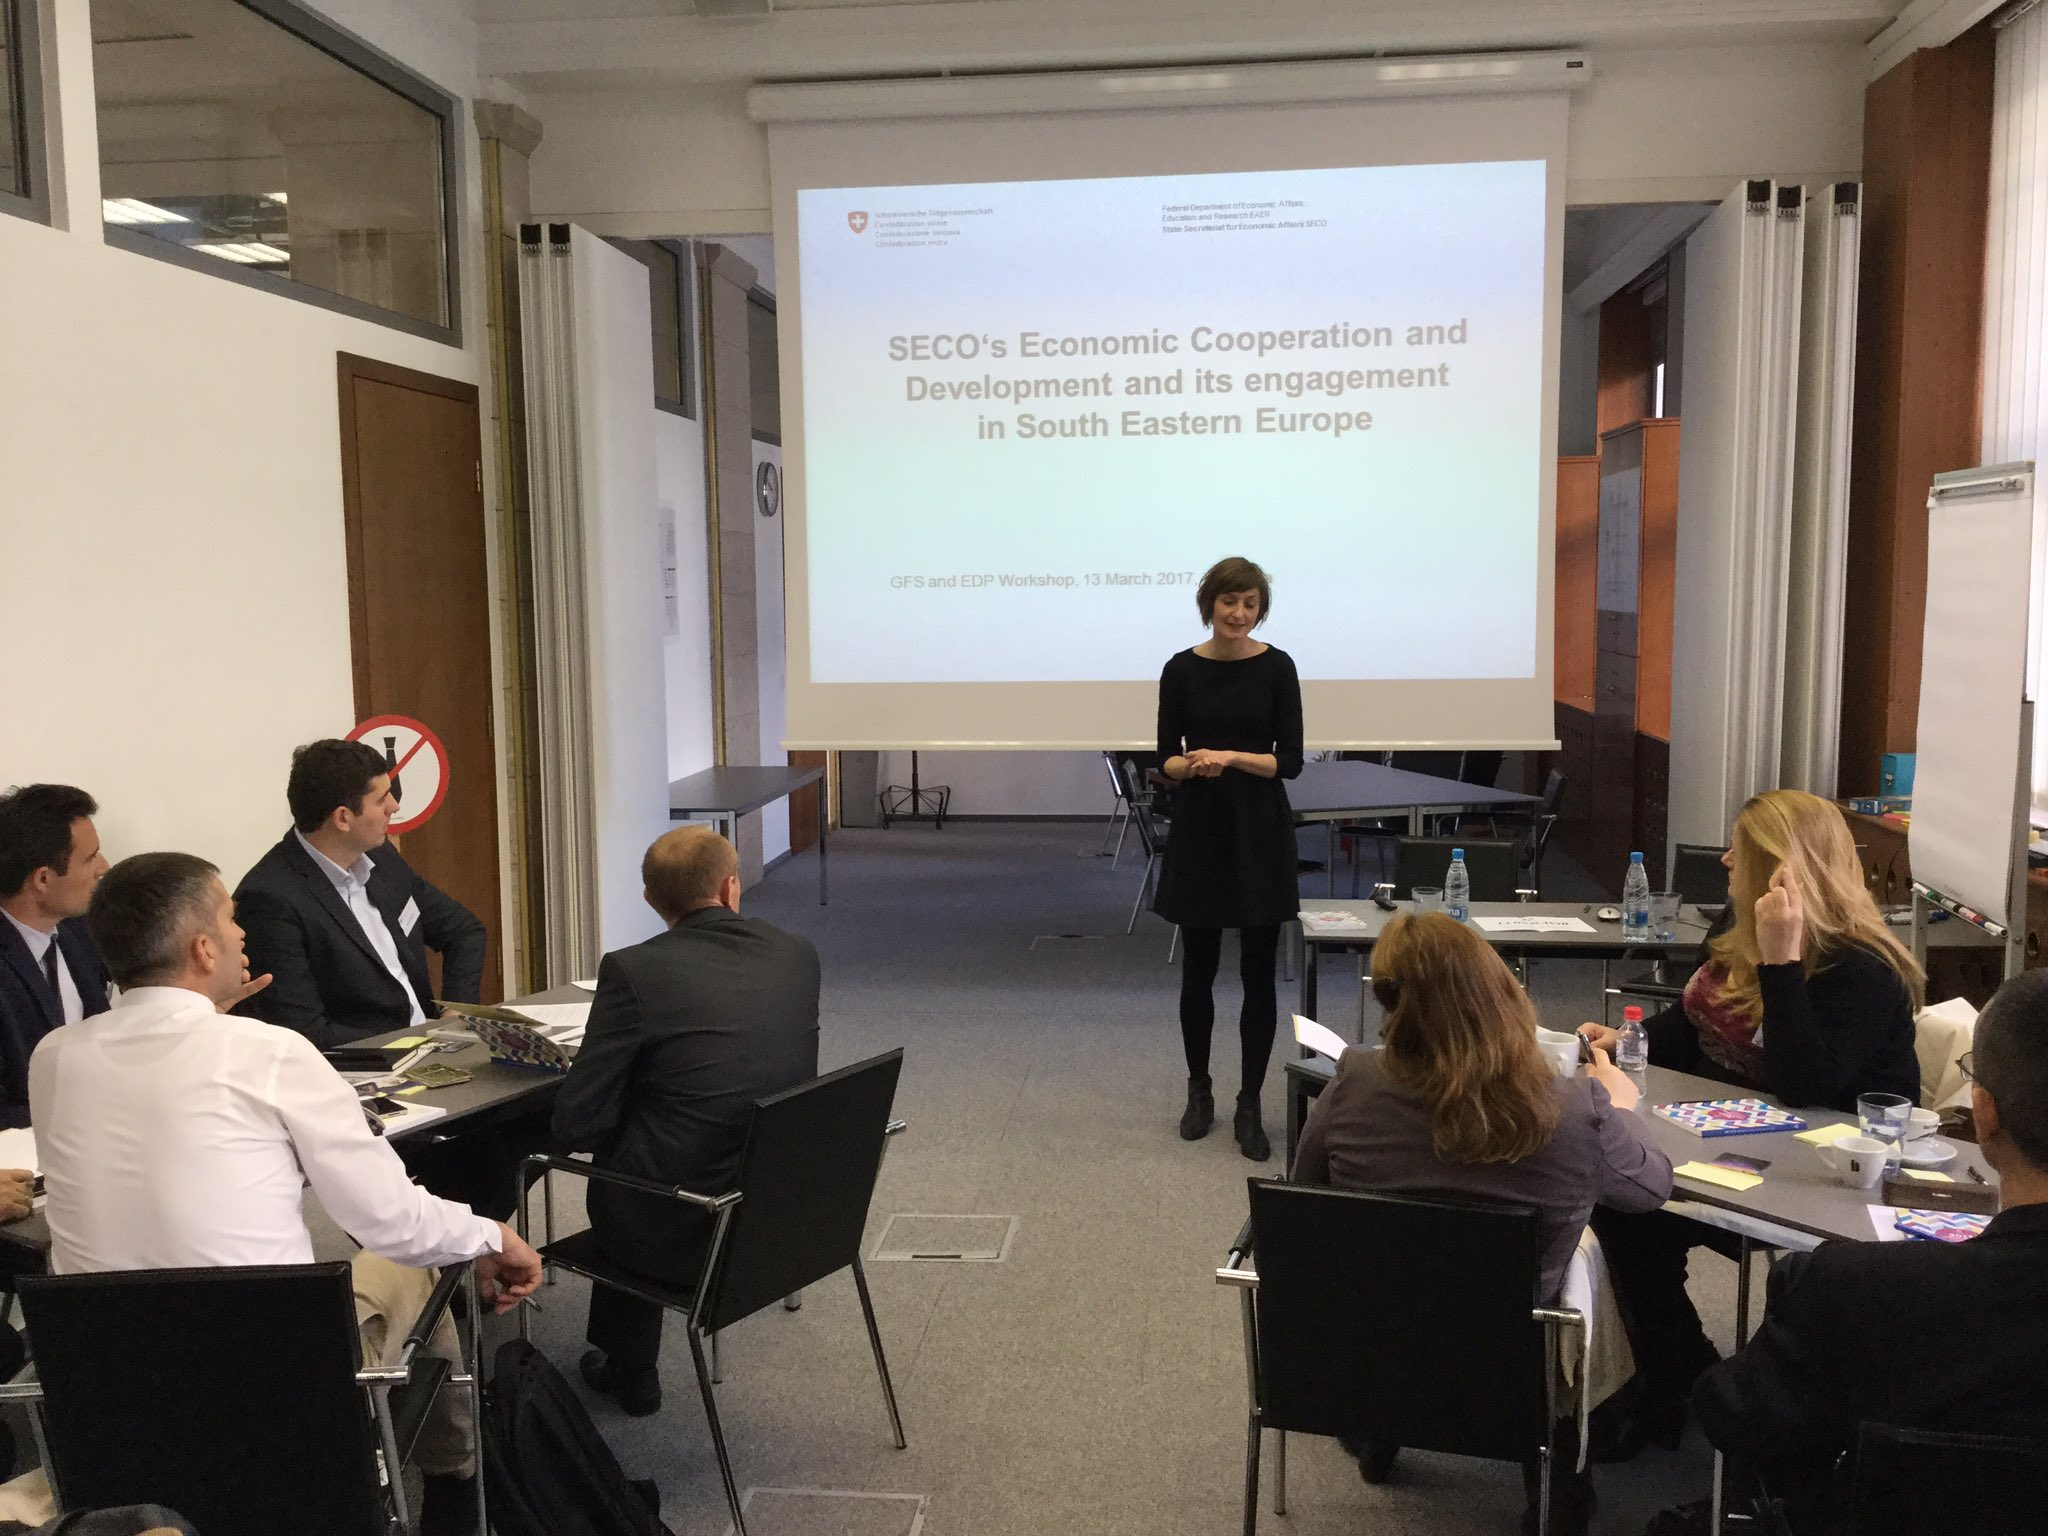 Irene Frei from #SECO on the role of SECO and engagement in #SEE https://t.co/7ueV6T2ulS